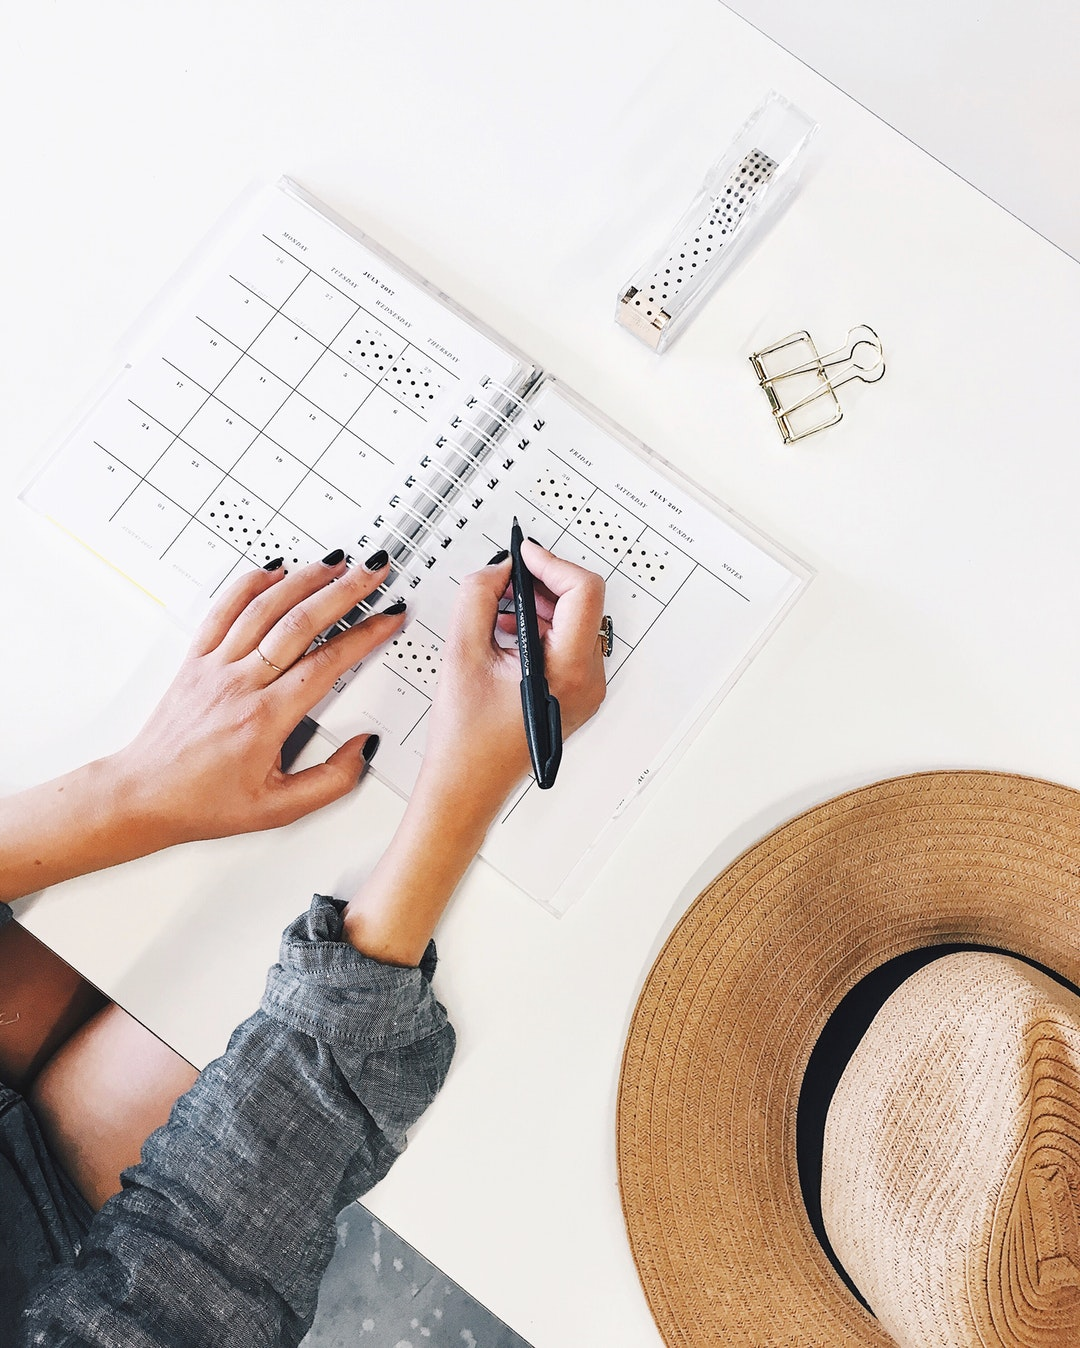 An overhead shot of a person writing in a planner on a desk